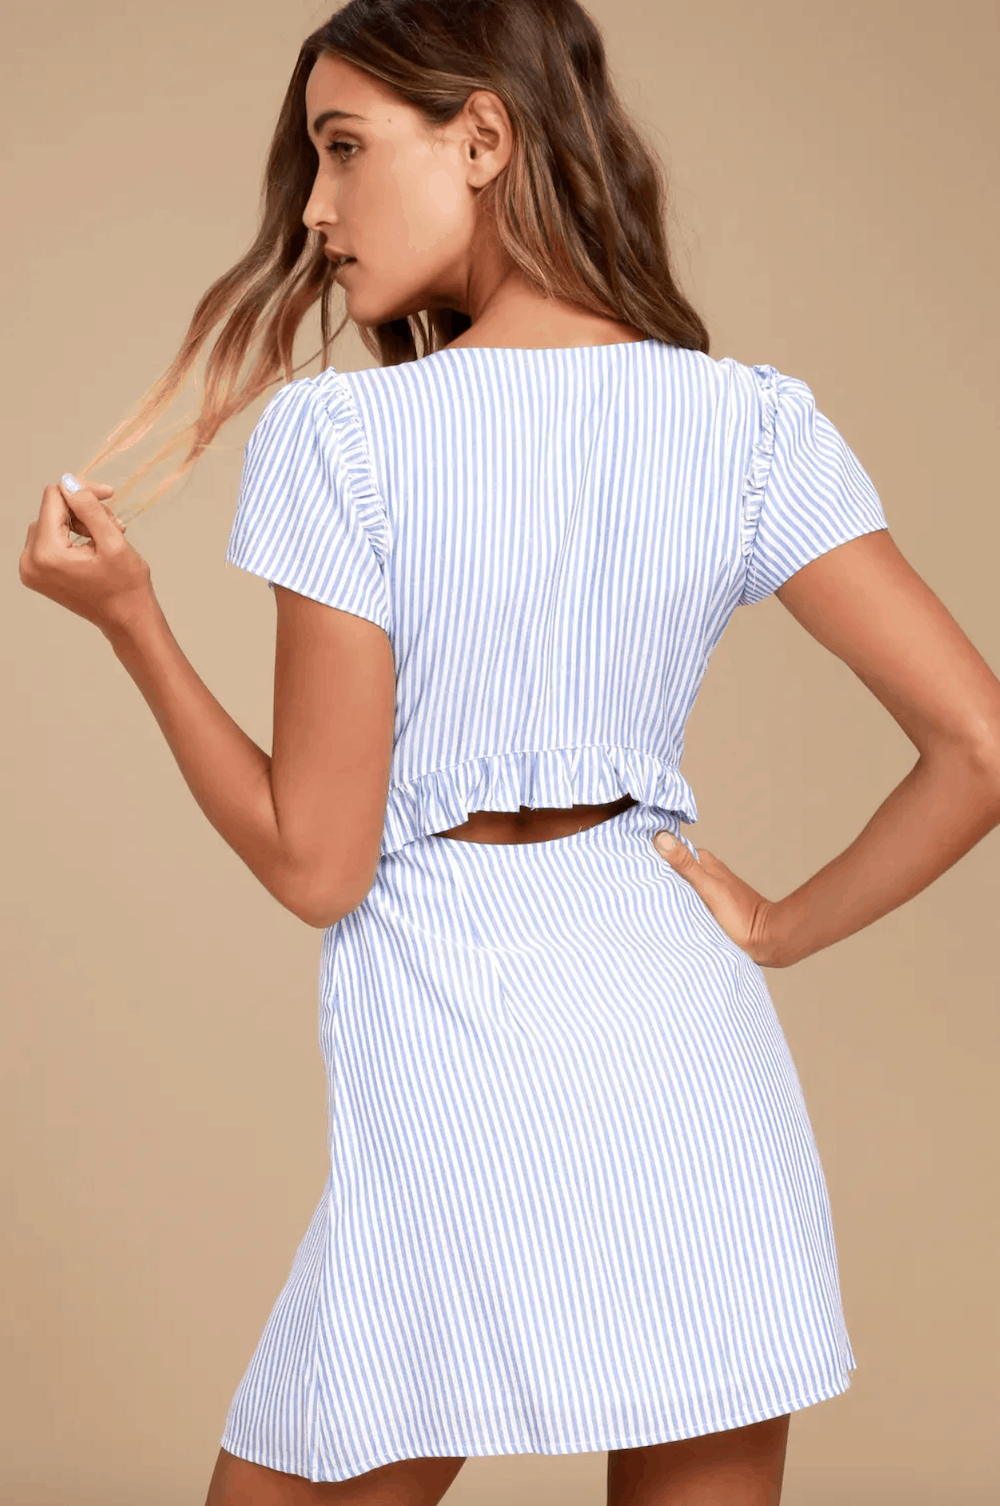 Positano Outfits Cute Dresses Seaport Light Blue and White Striped Tie Front Dress Lulus